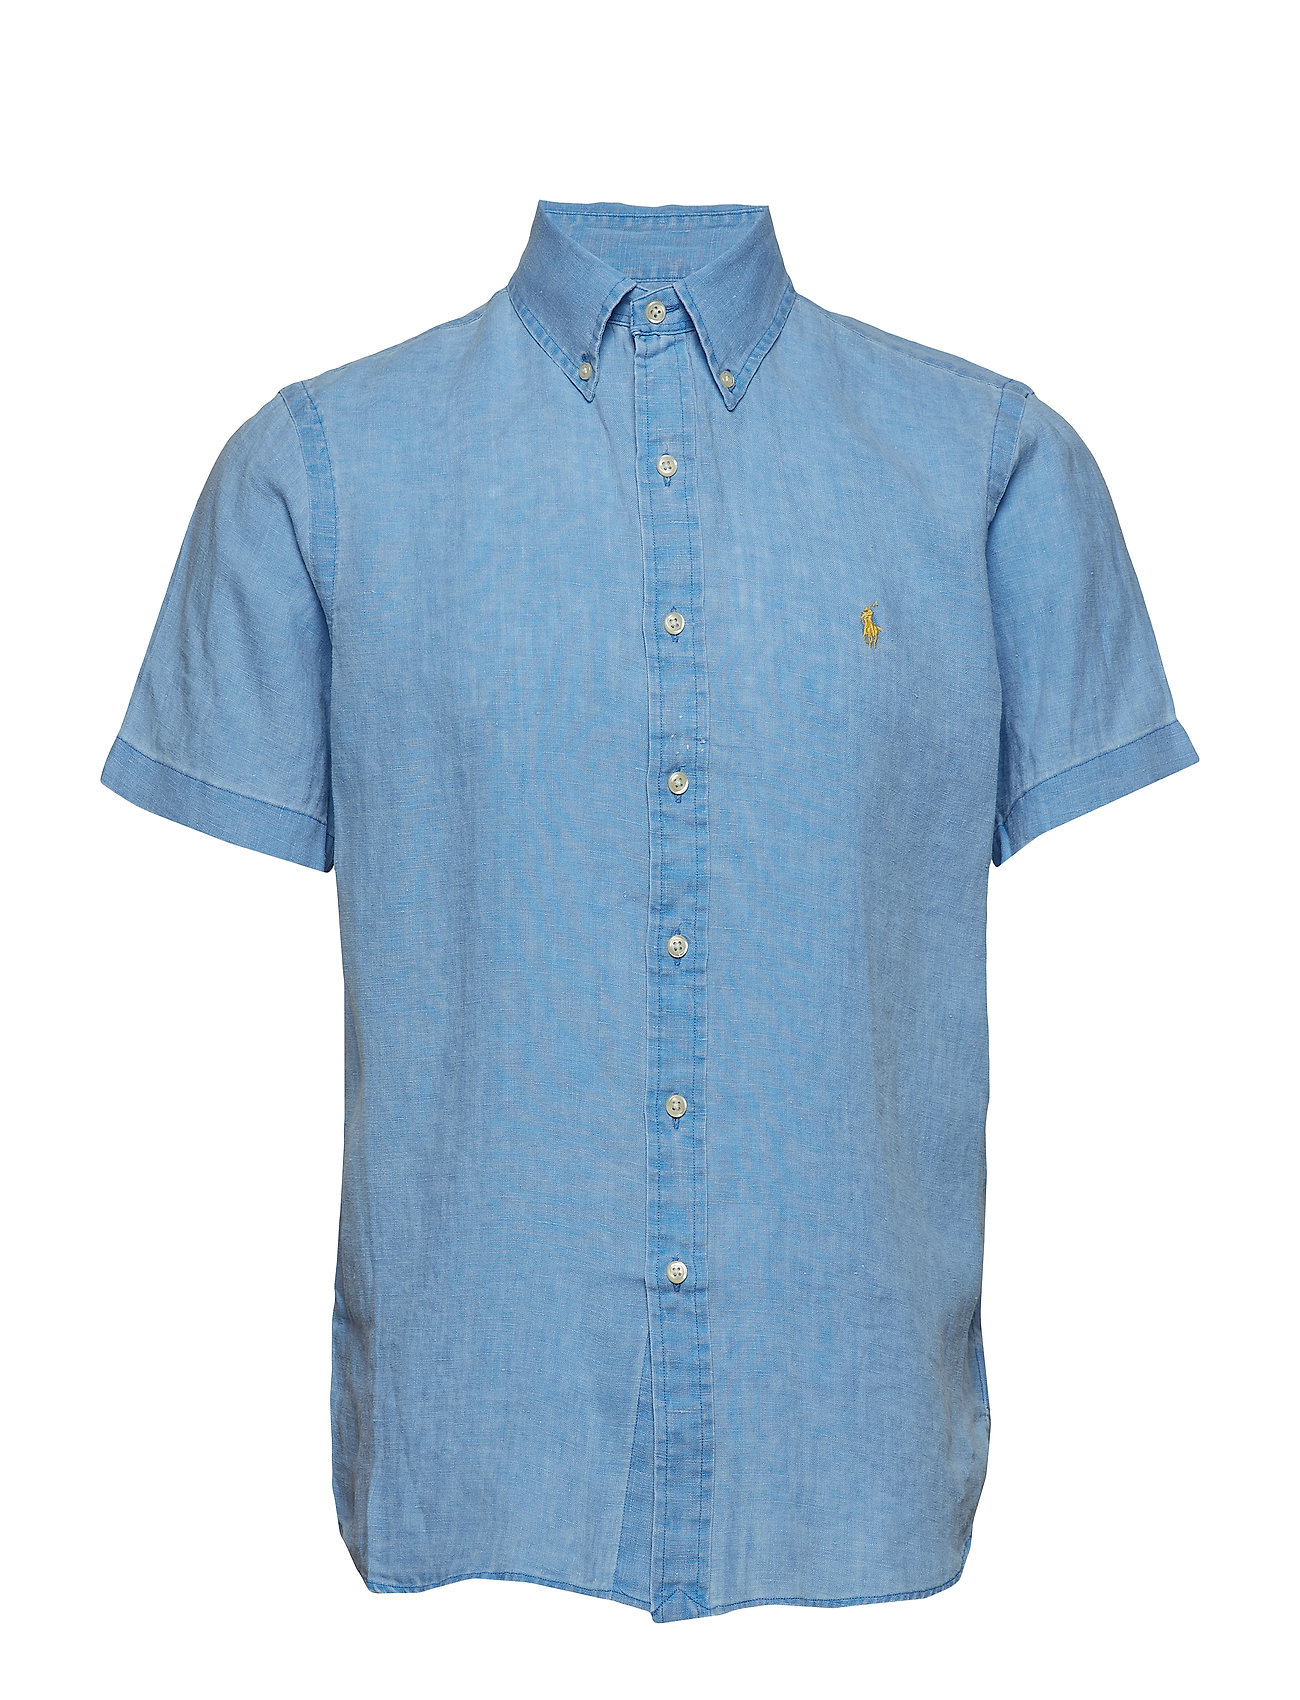 Polo Ralph Lauren Classic Fit Linen Shirt